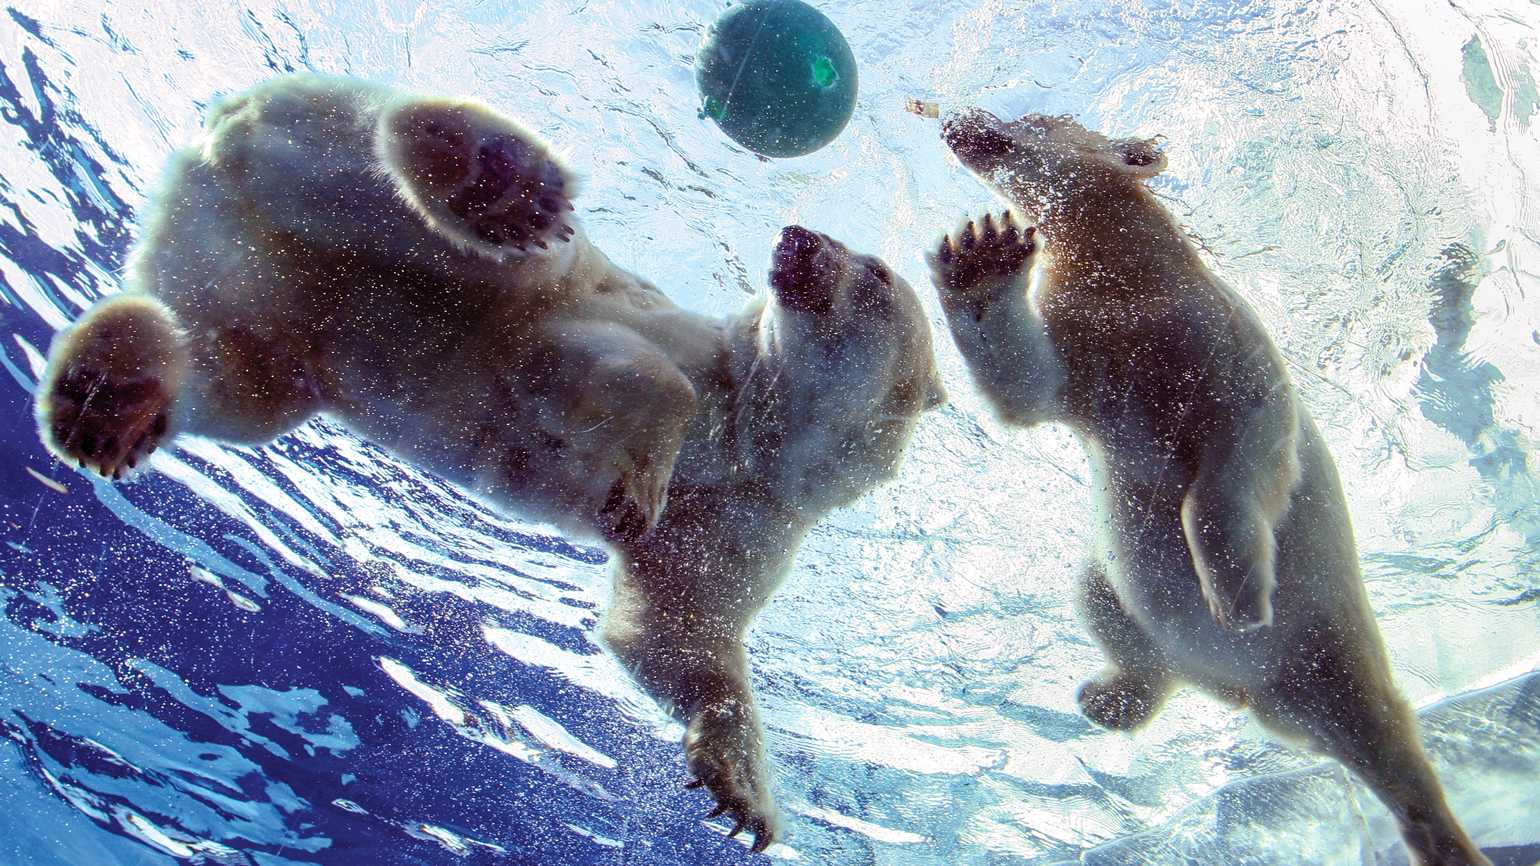 Talini (R), a 9-month old 160-pound polar bear cub swims with her mother Barle.